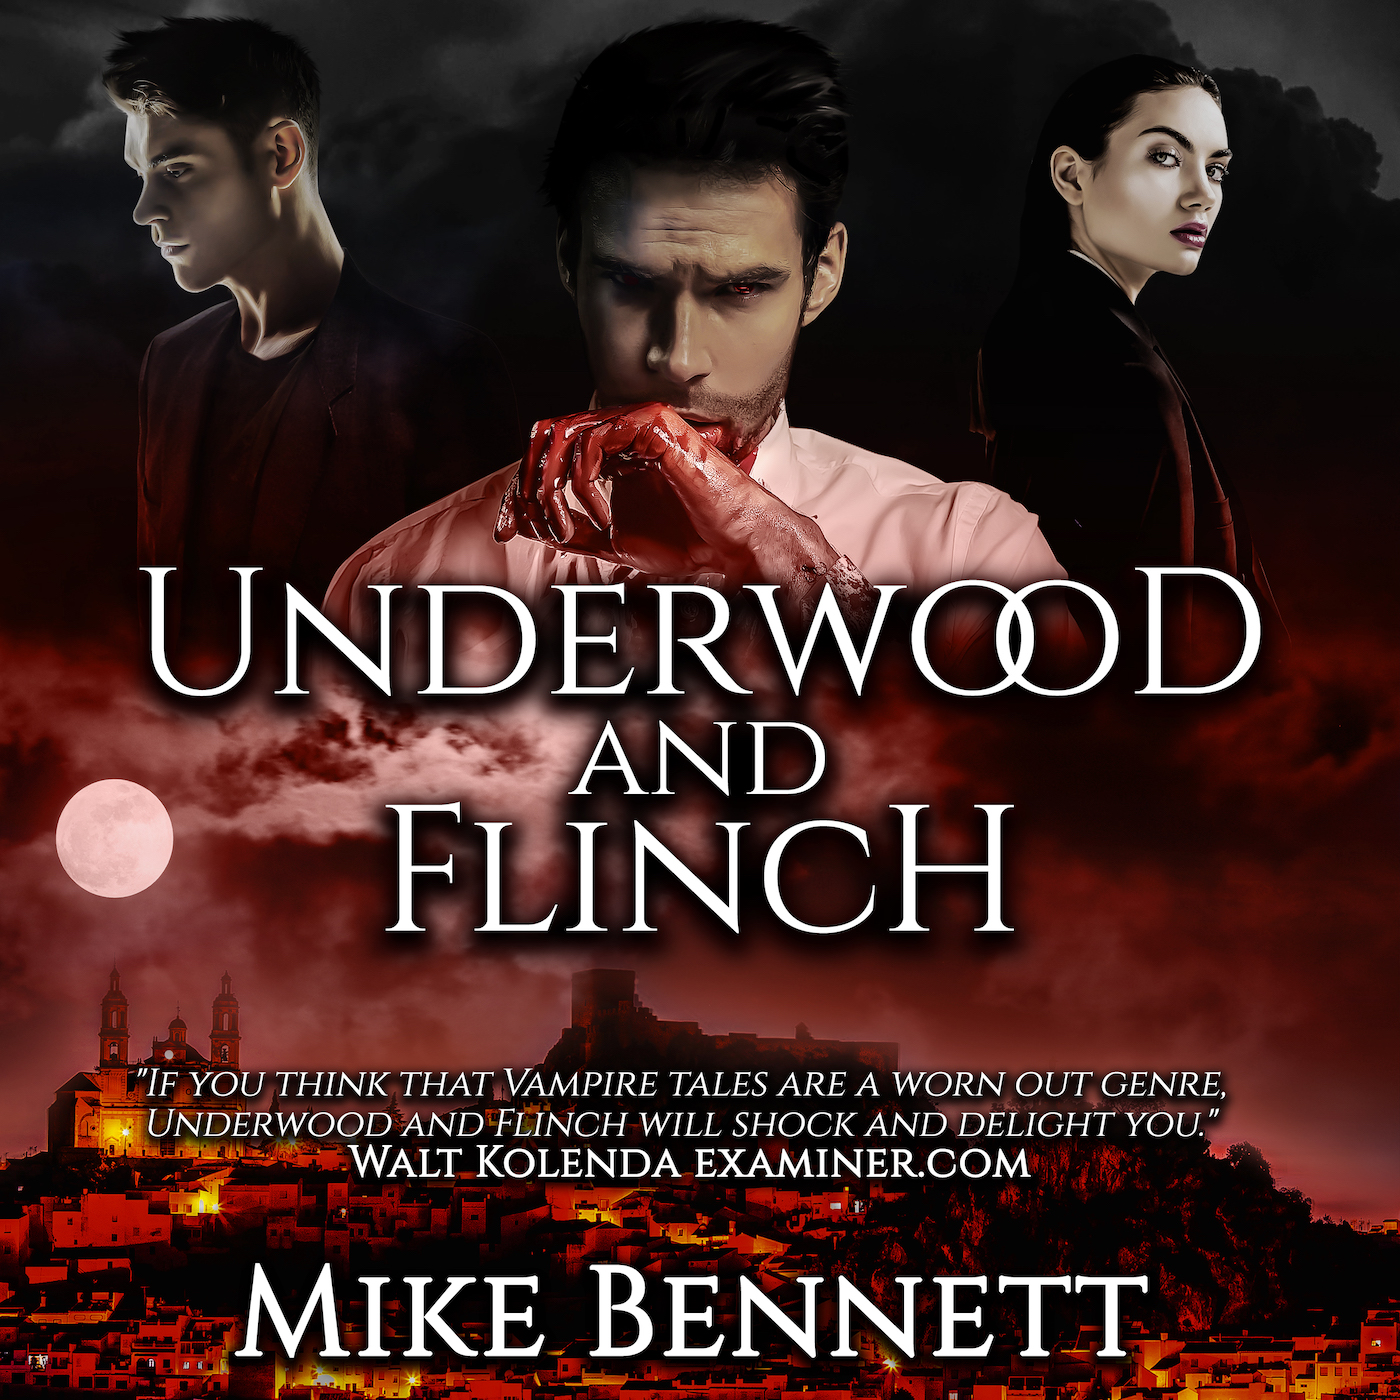 Underwood and Flinch and Other Audiobooks by Mike Bennett